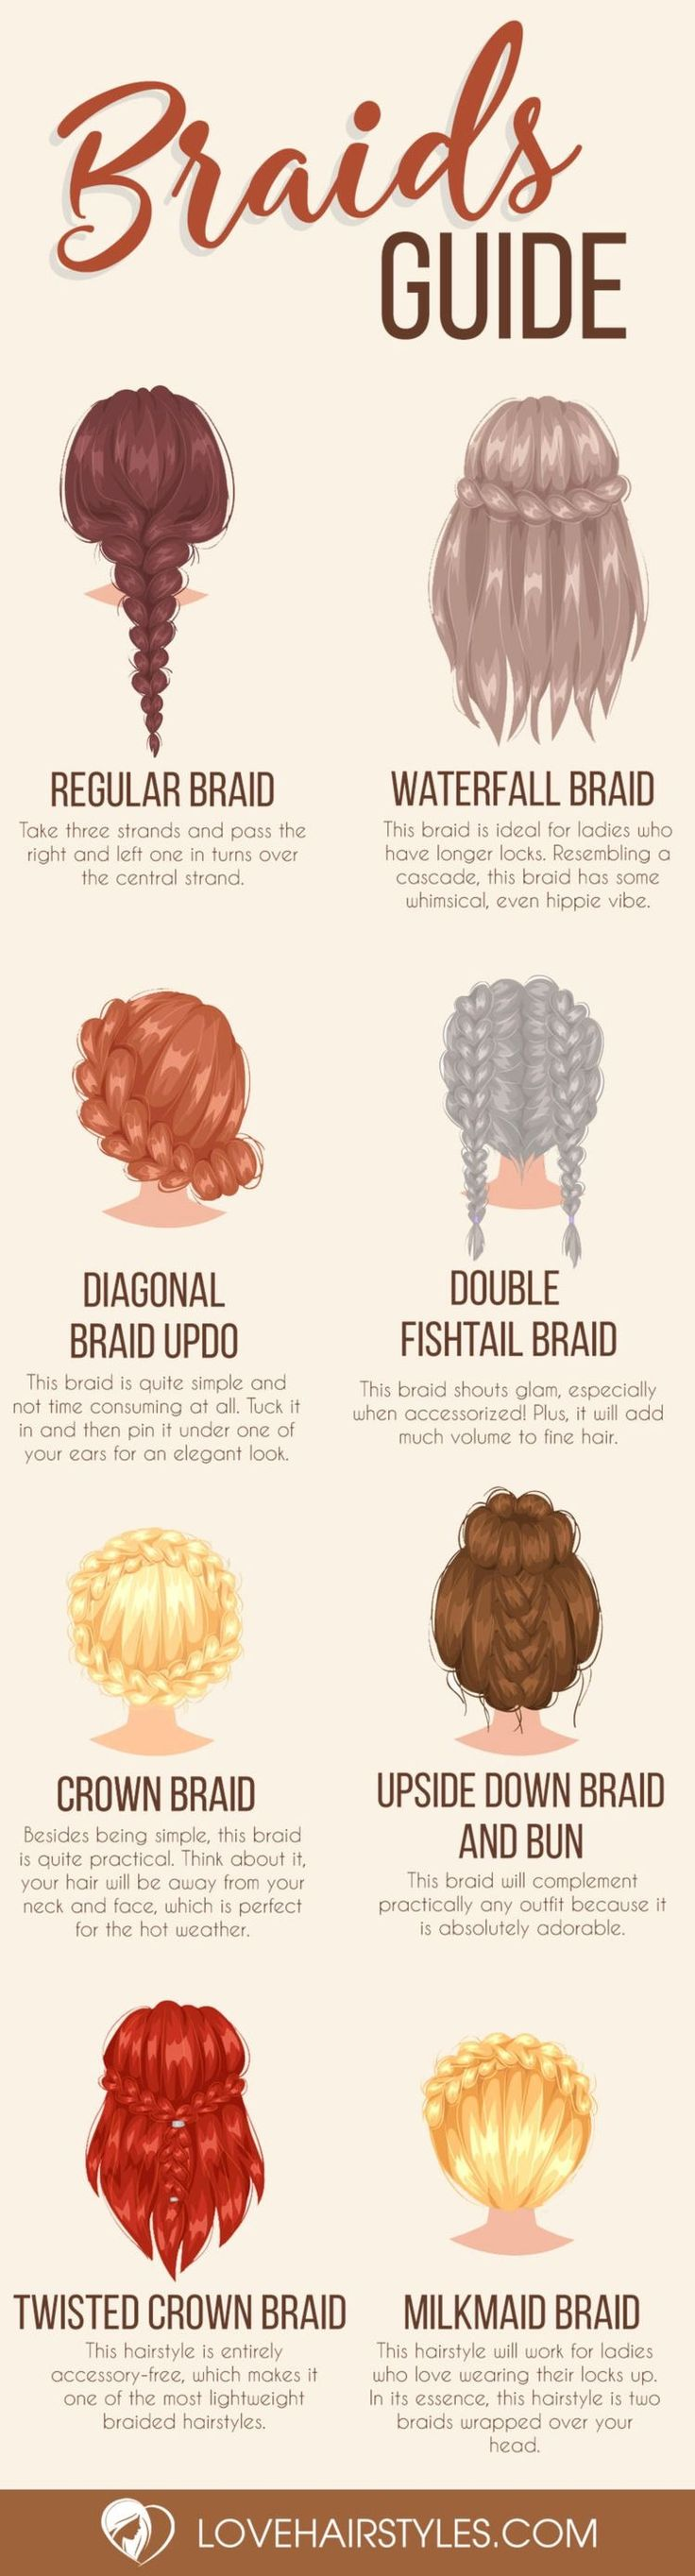 52 best Hair style ideas images on Pinterest